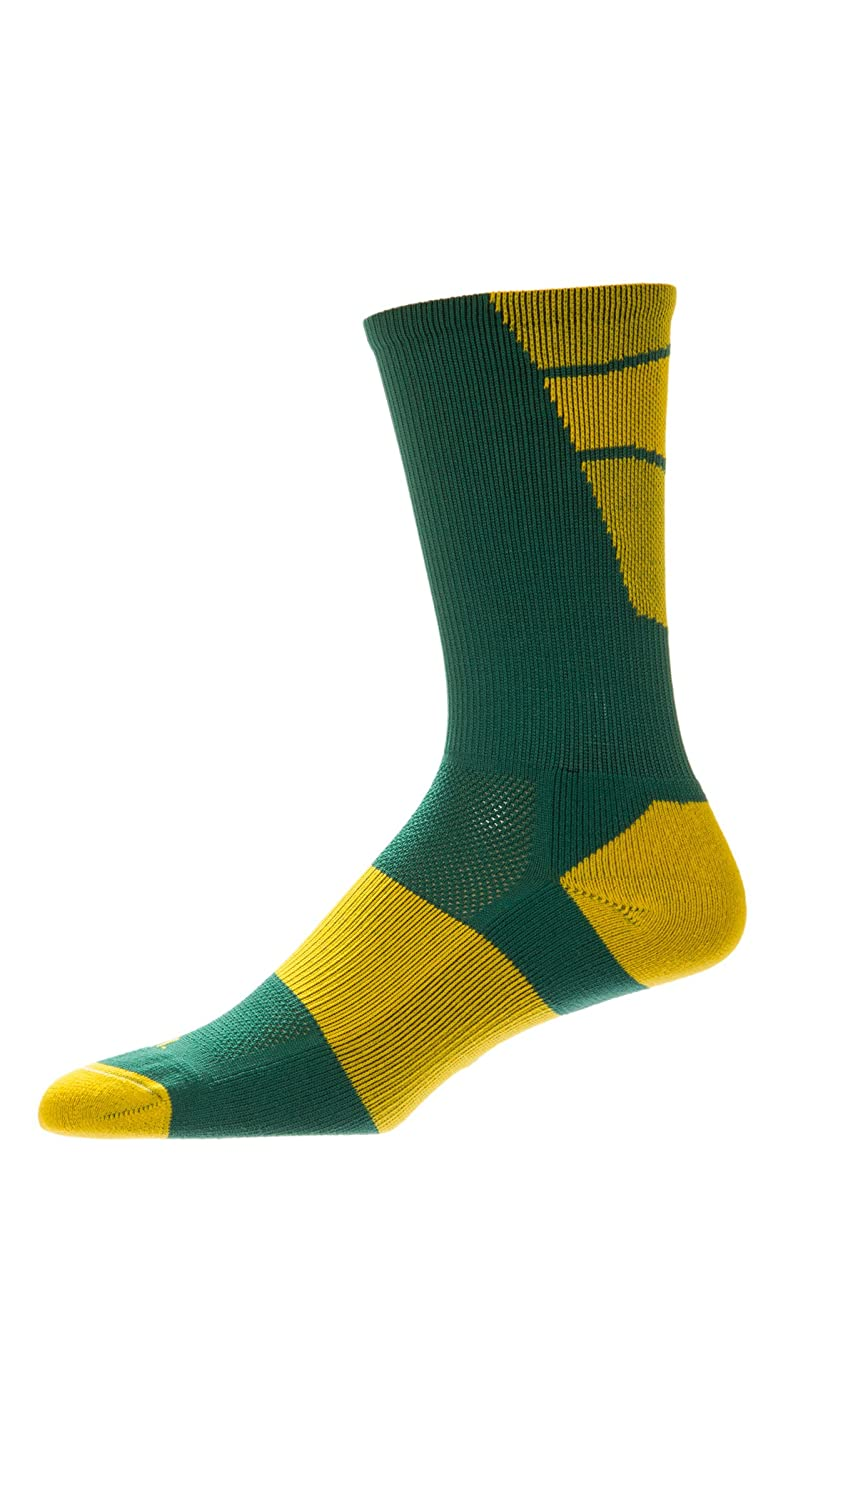 CSI Point Guard Performance Crew Socks Made In The USA Dk Green/Gold 6MAN13018